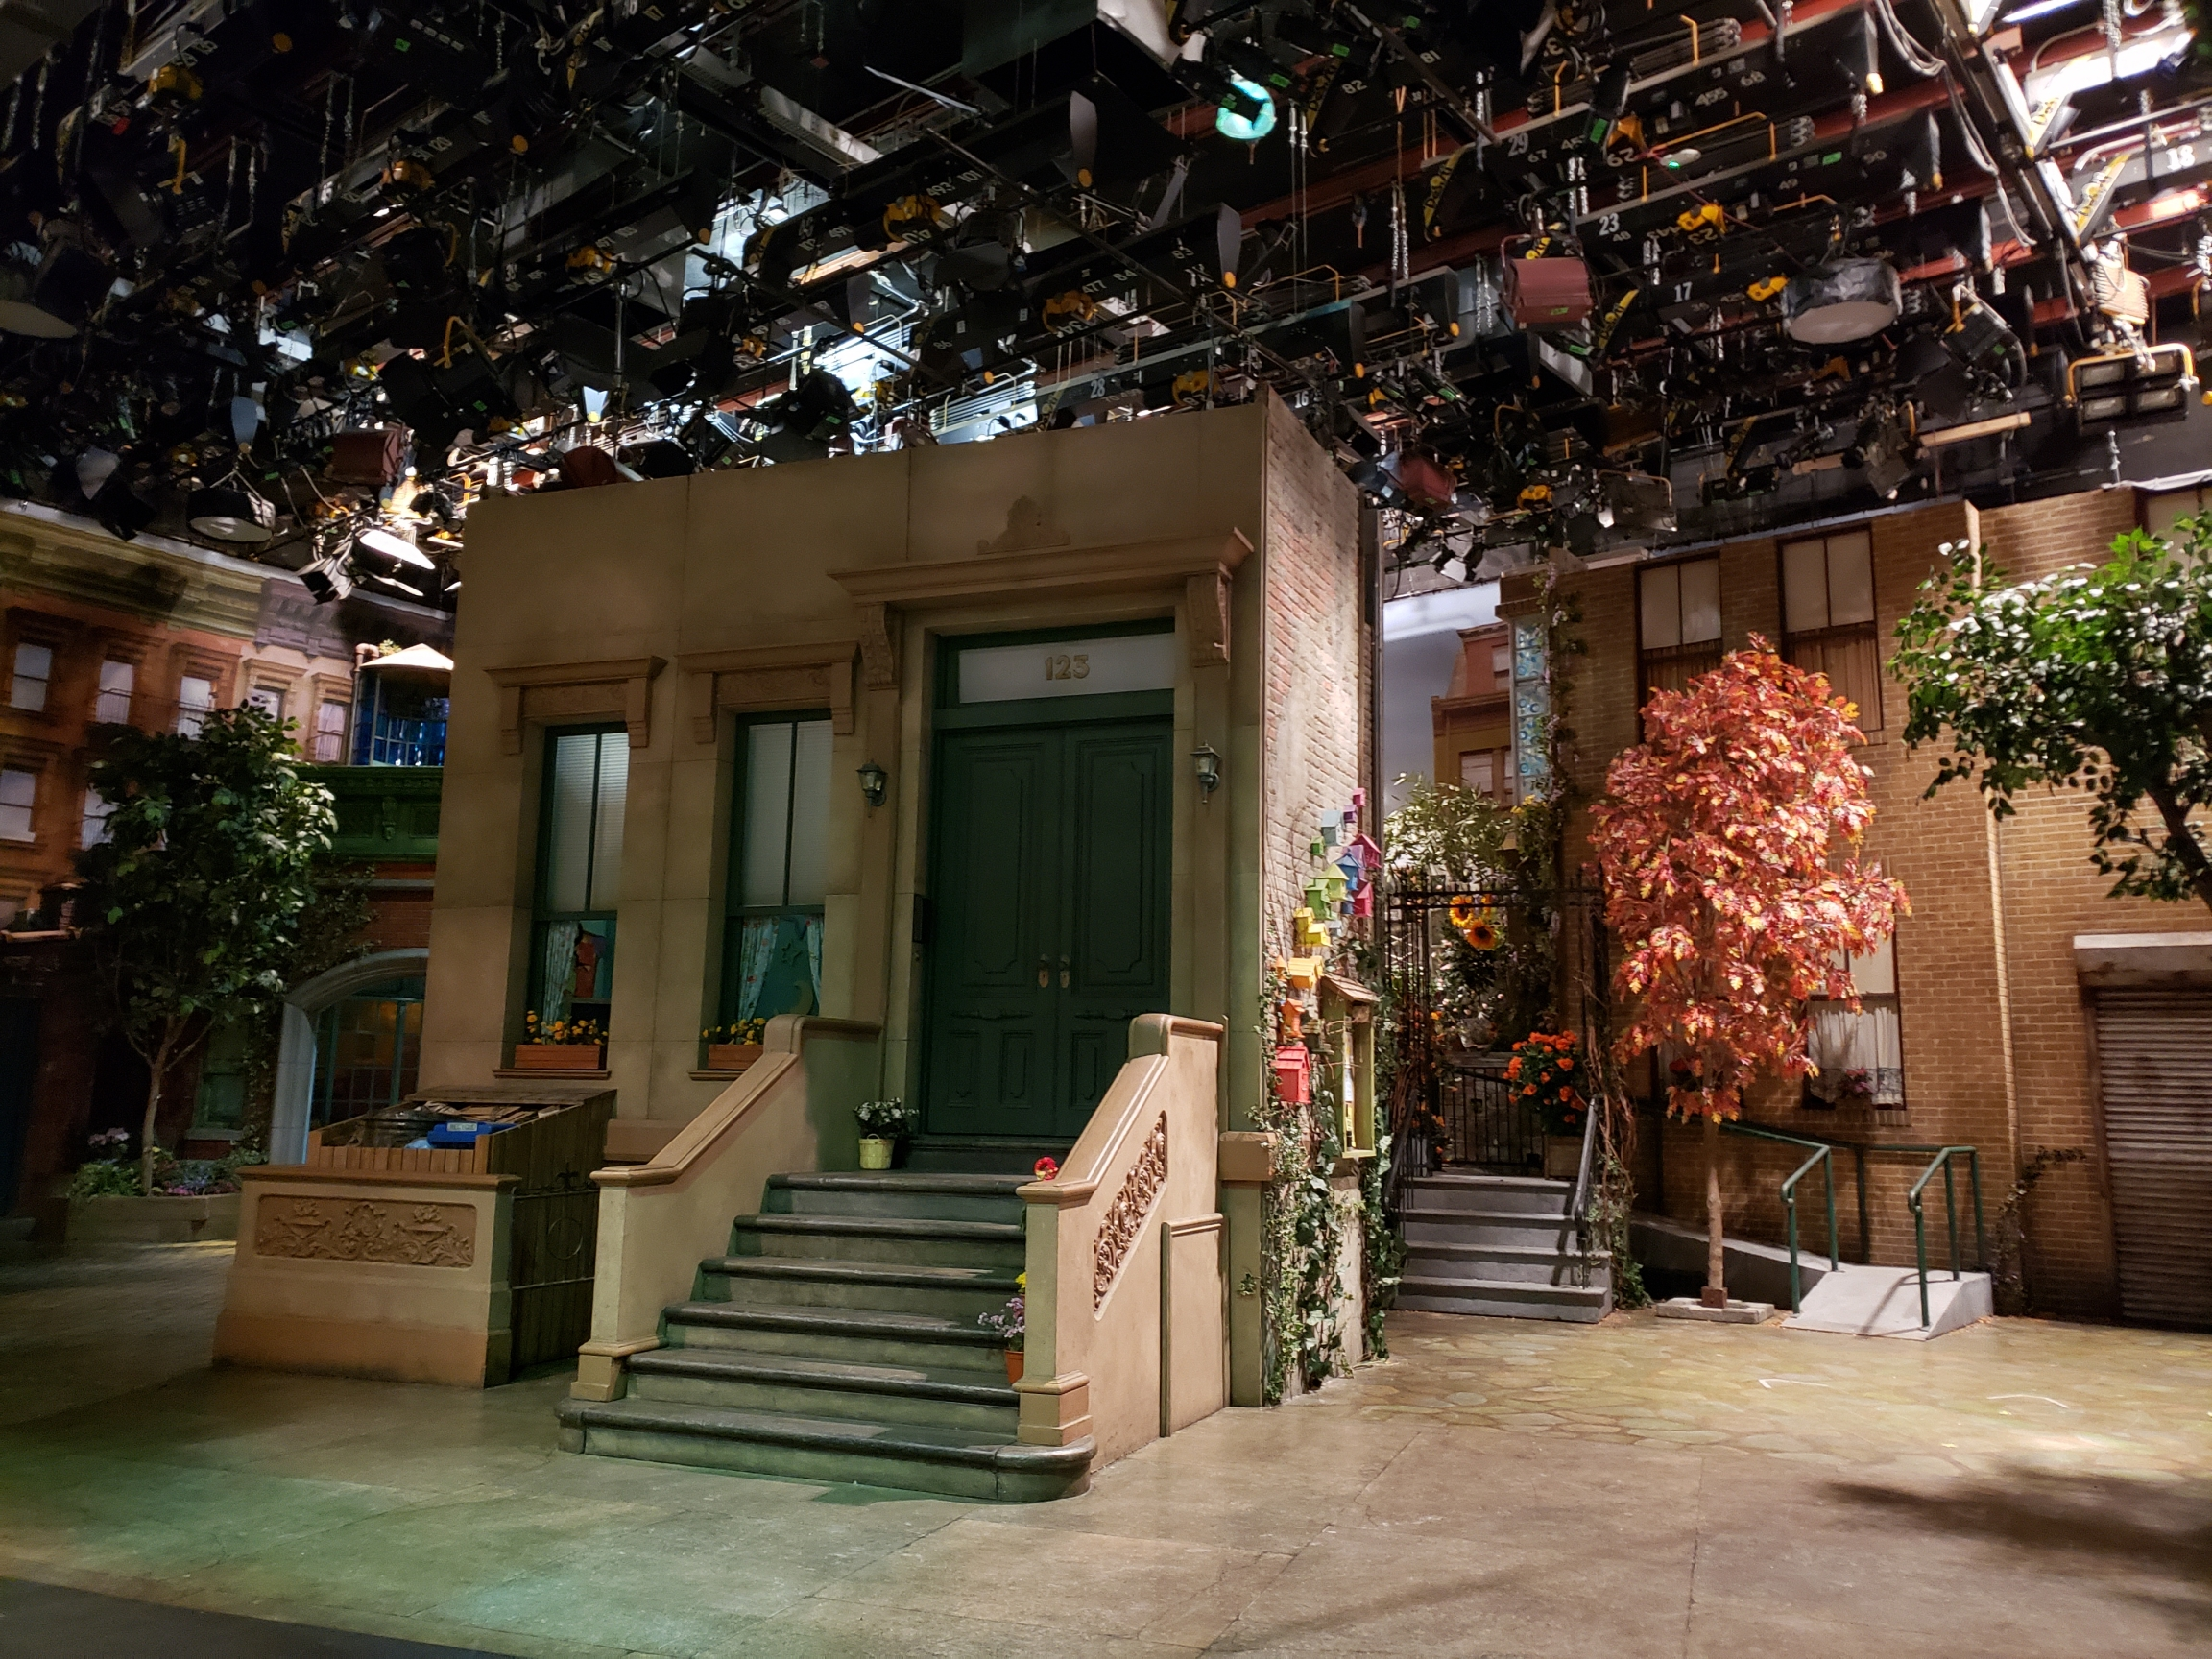 123 Sesame Street in Stage J at Kaufman Astoria Studios.